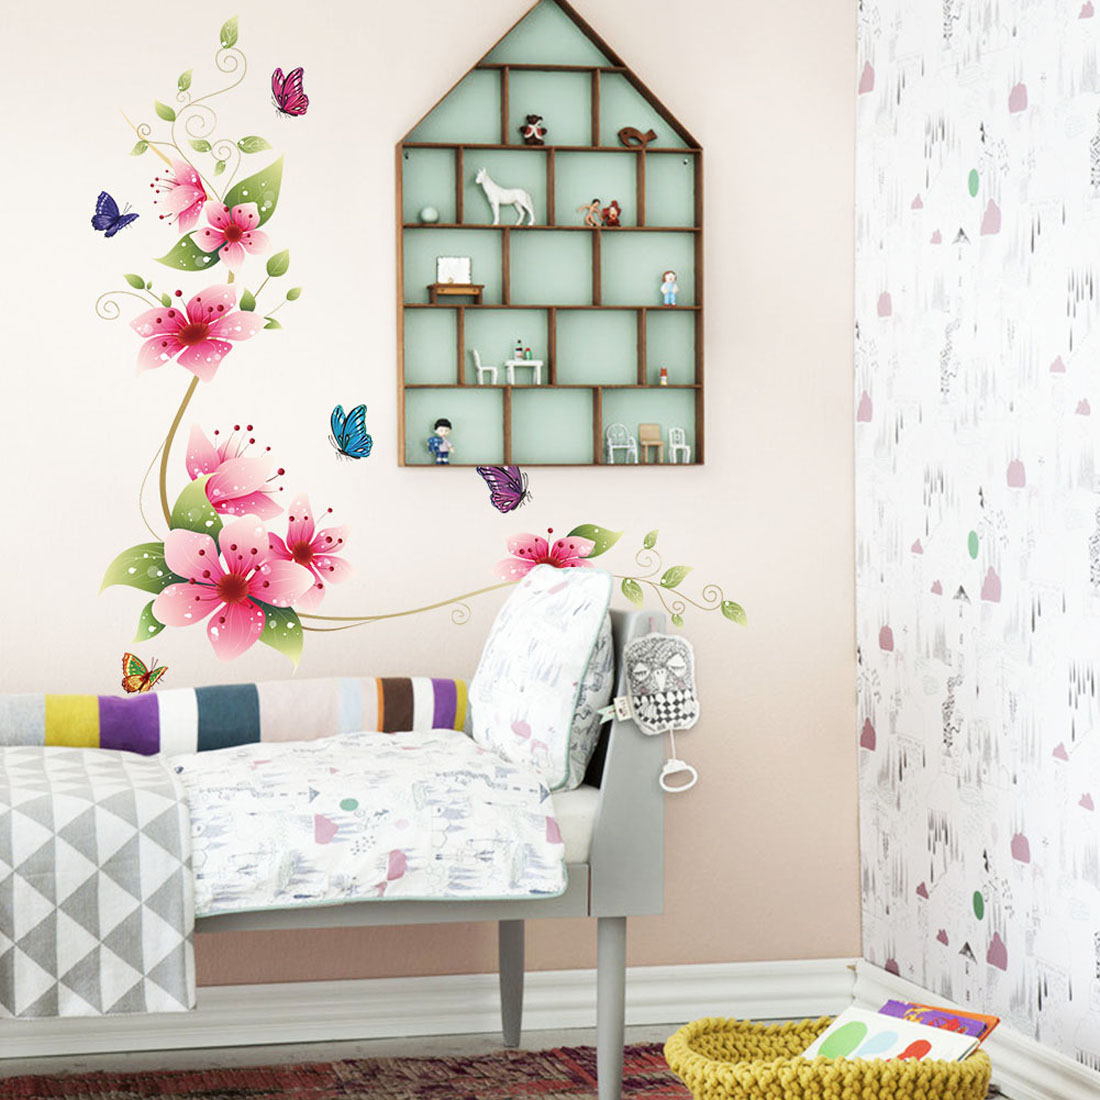 online get cheap pink butterfly wall stickers aliexpress com high quality wall stickers decal removable kid art pink flower butterflies pattern home mural decor wholesale